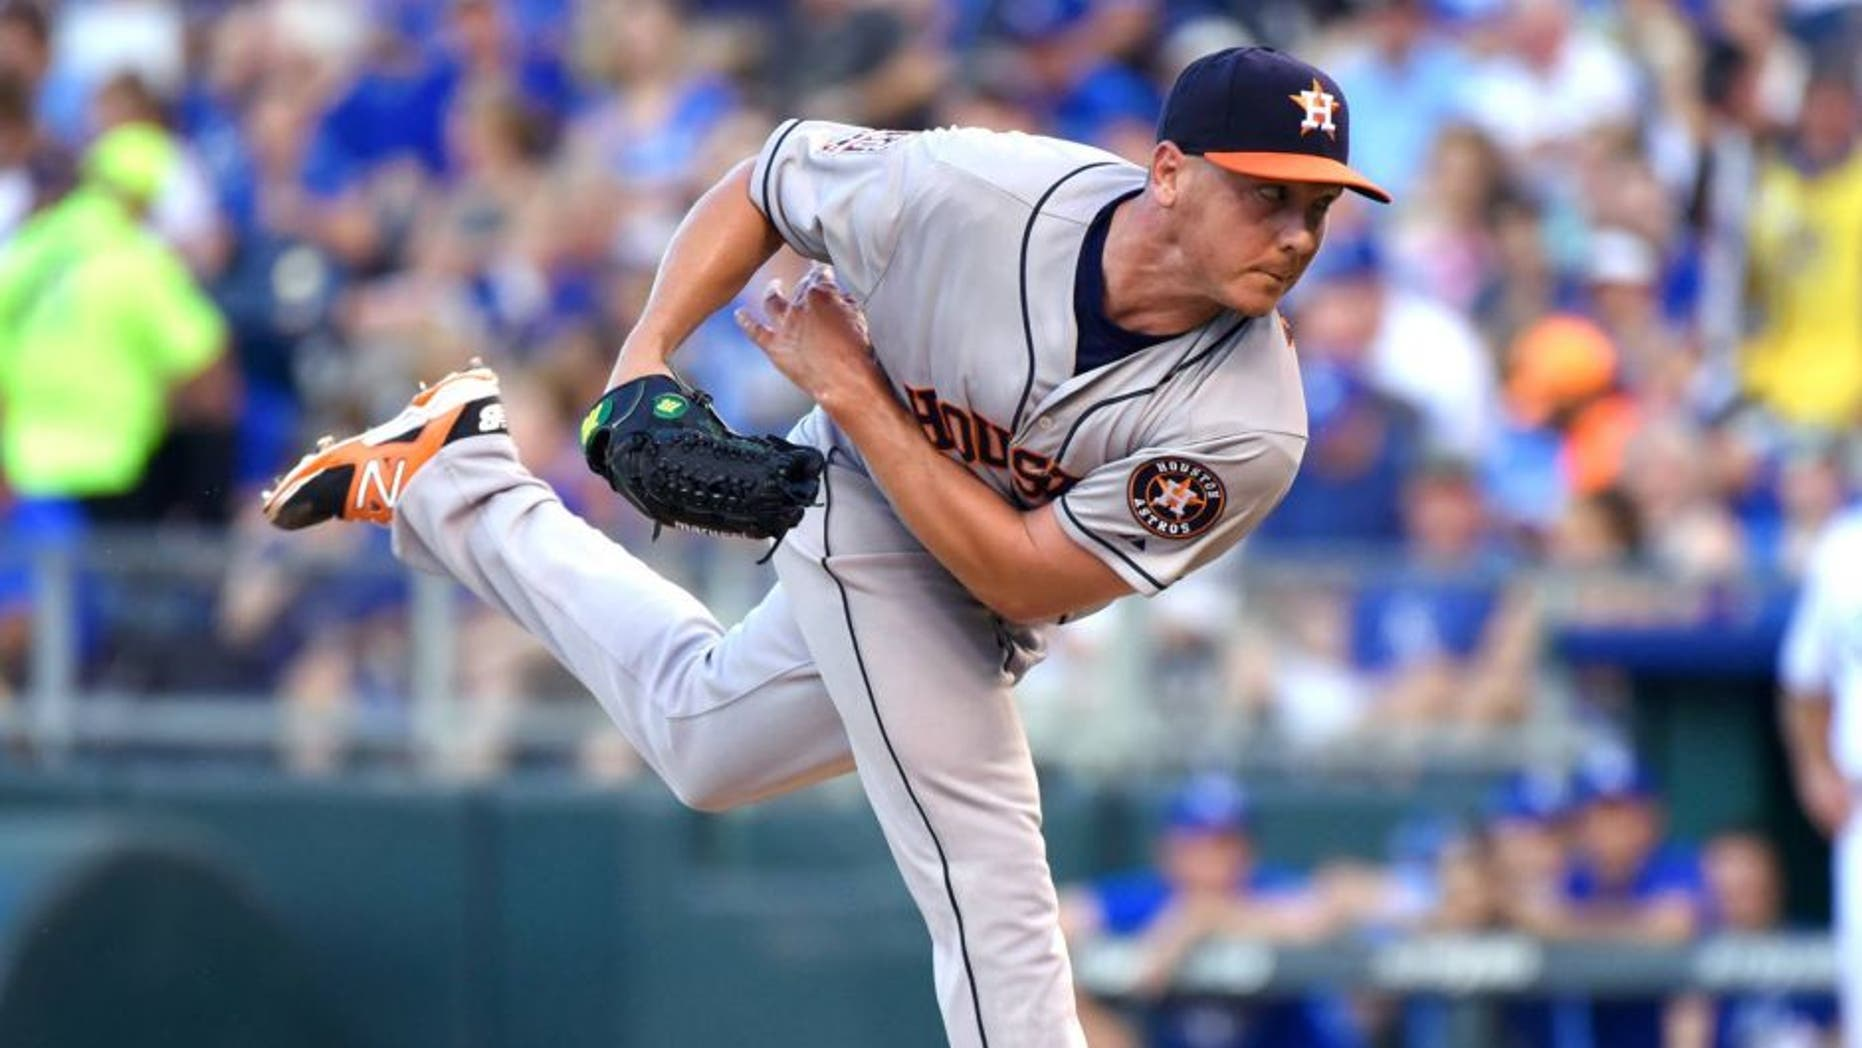 KANSAS CITY, MO - JULY 24: Scott Kazmir #26 of the Houston Astros throws in the third inning against the Kansas City Royals at Kauffman Stadium on July 24, 2015 in Kansas City, Missouri. (Photo by Ed Zurga/Getty Images)